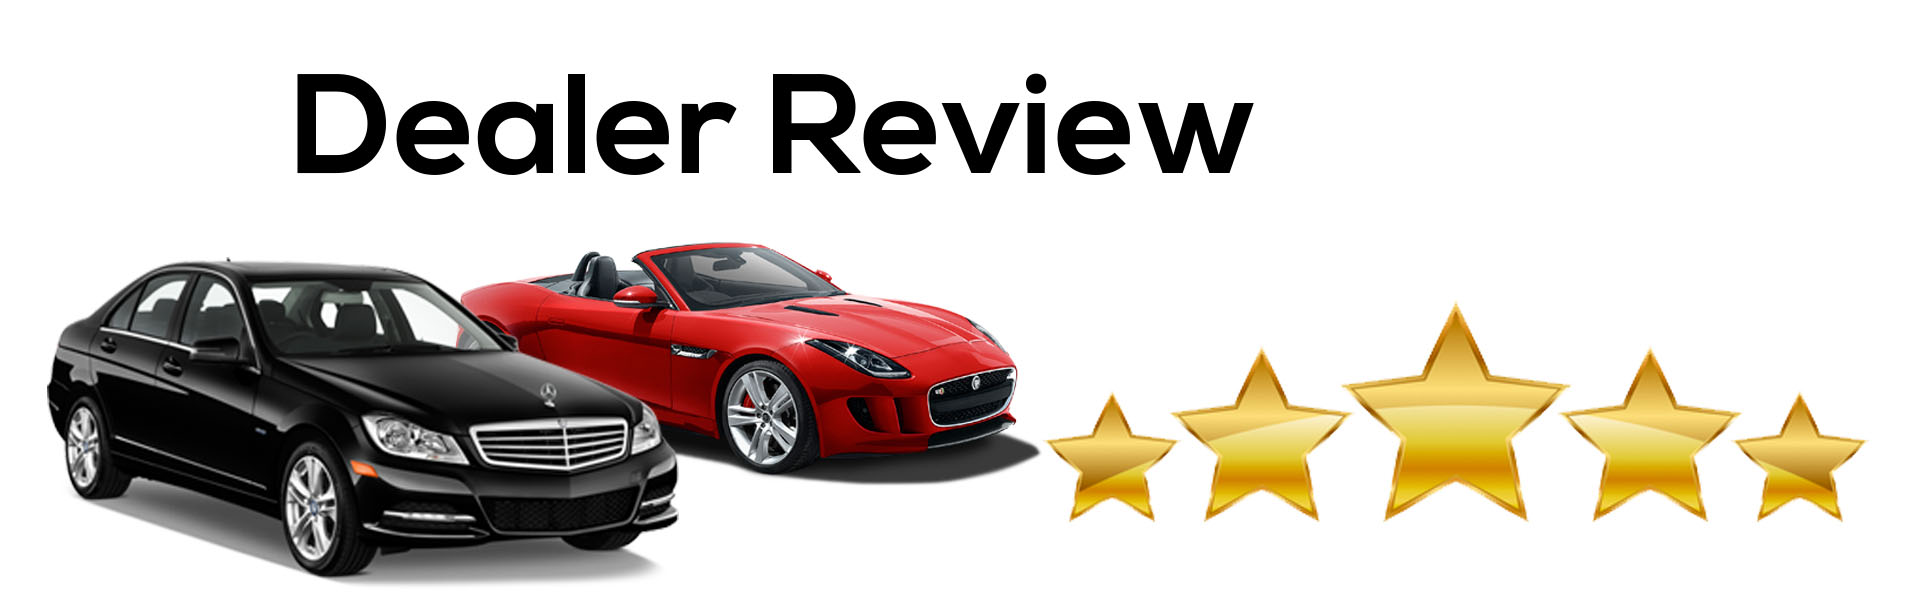 Image result for car dealership review